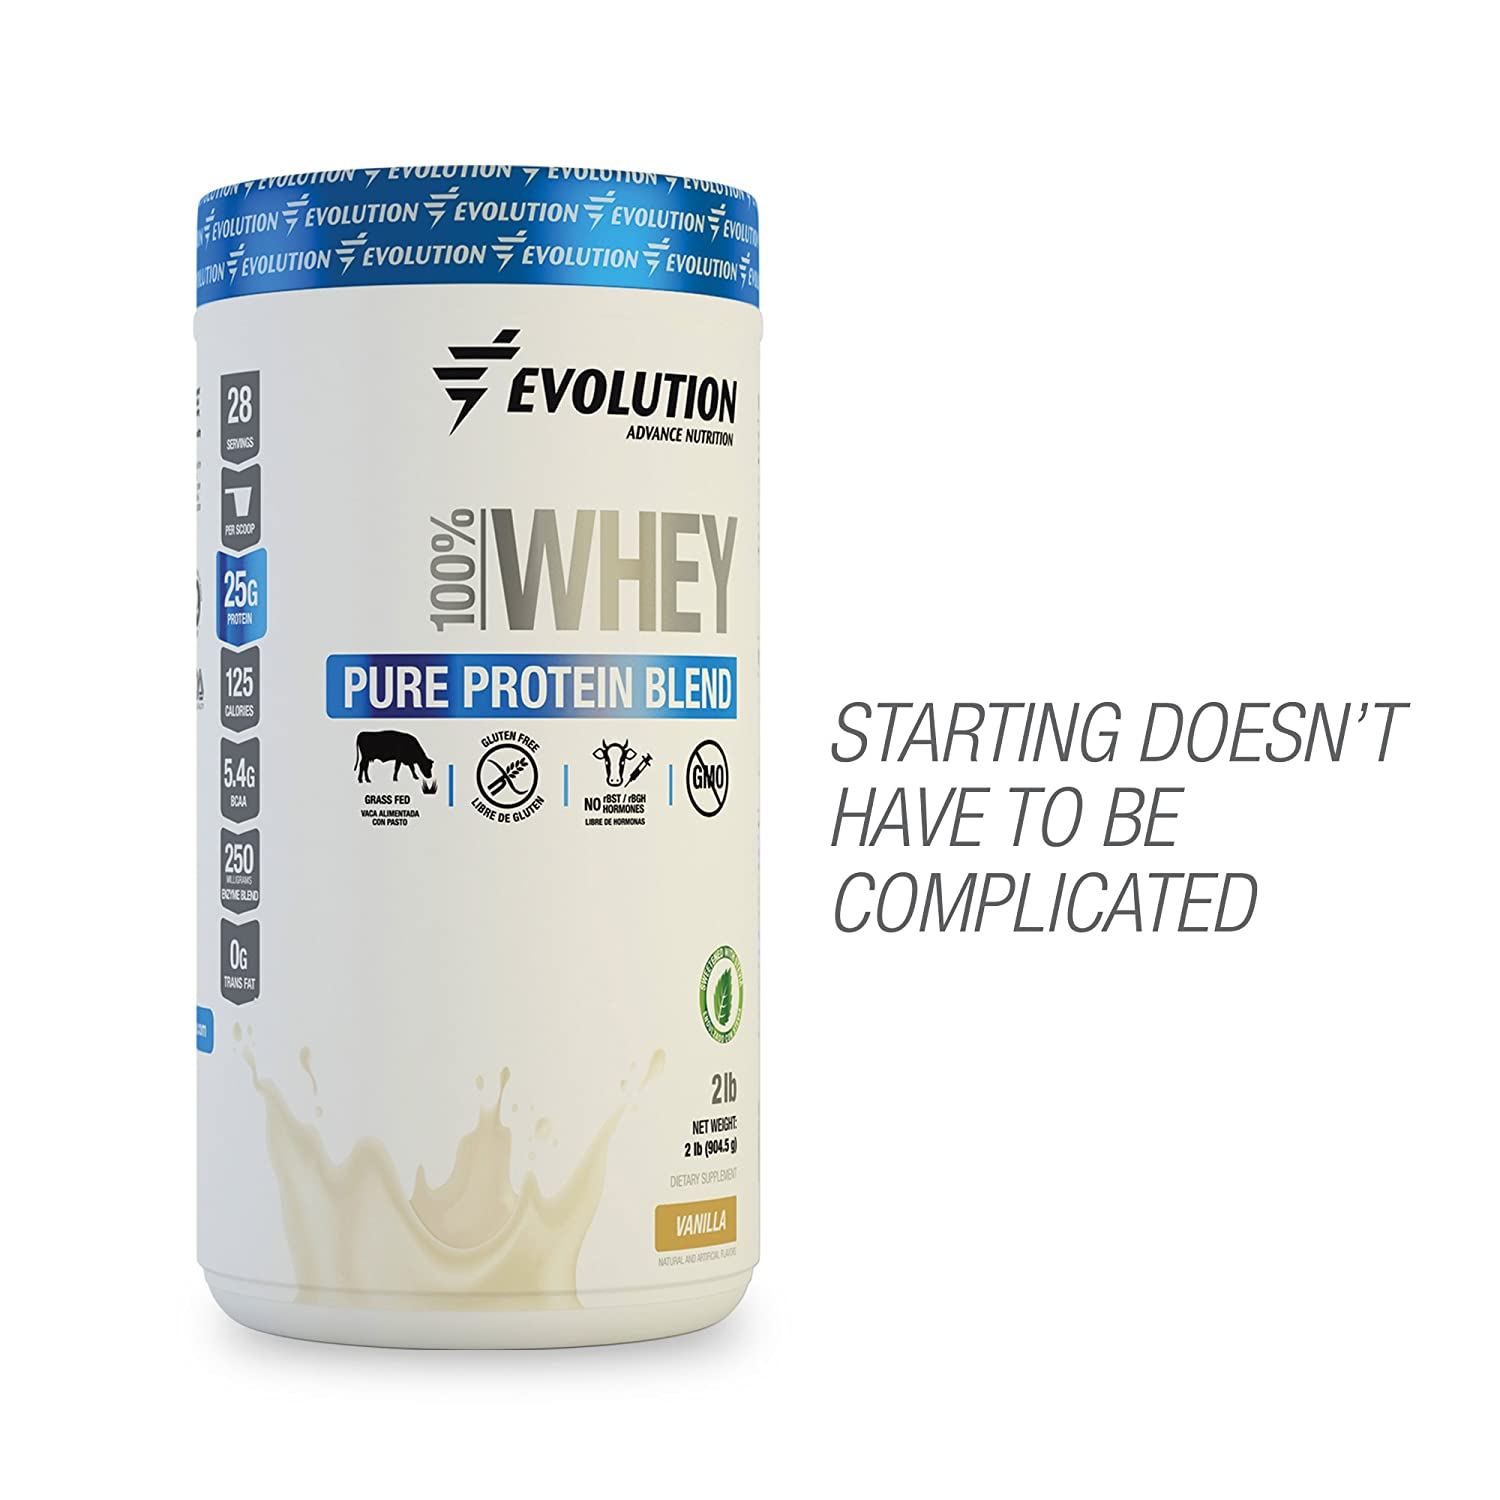 Evolution Whey Protein Powder Blend Grass Fed - 25 Grams of Protein Only 125 Calories...